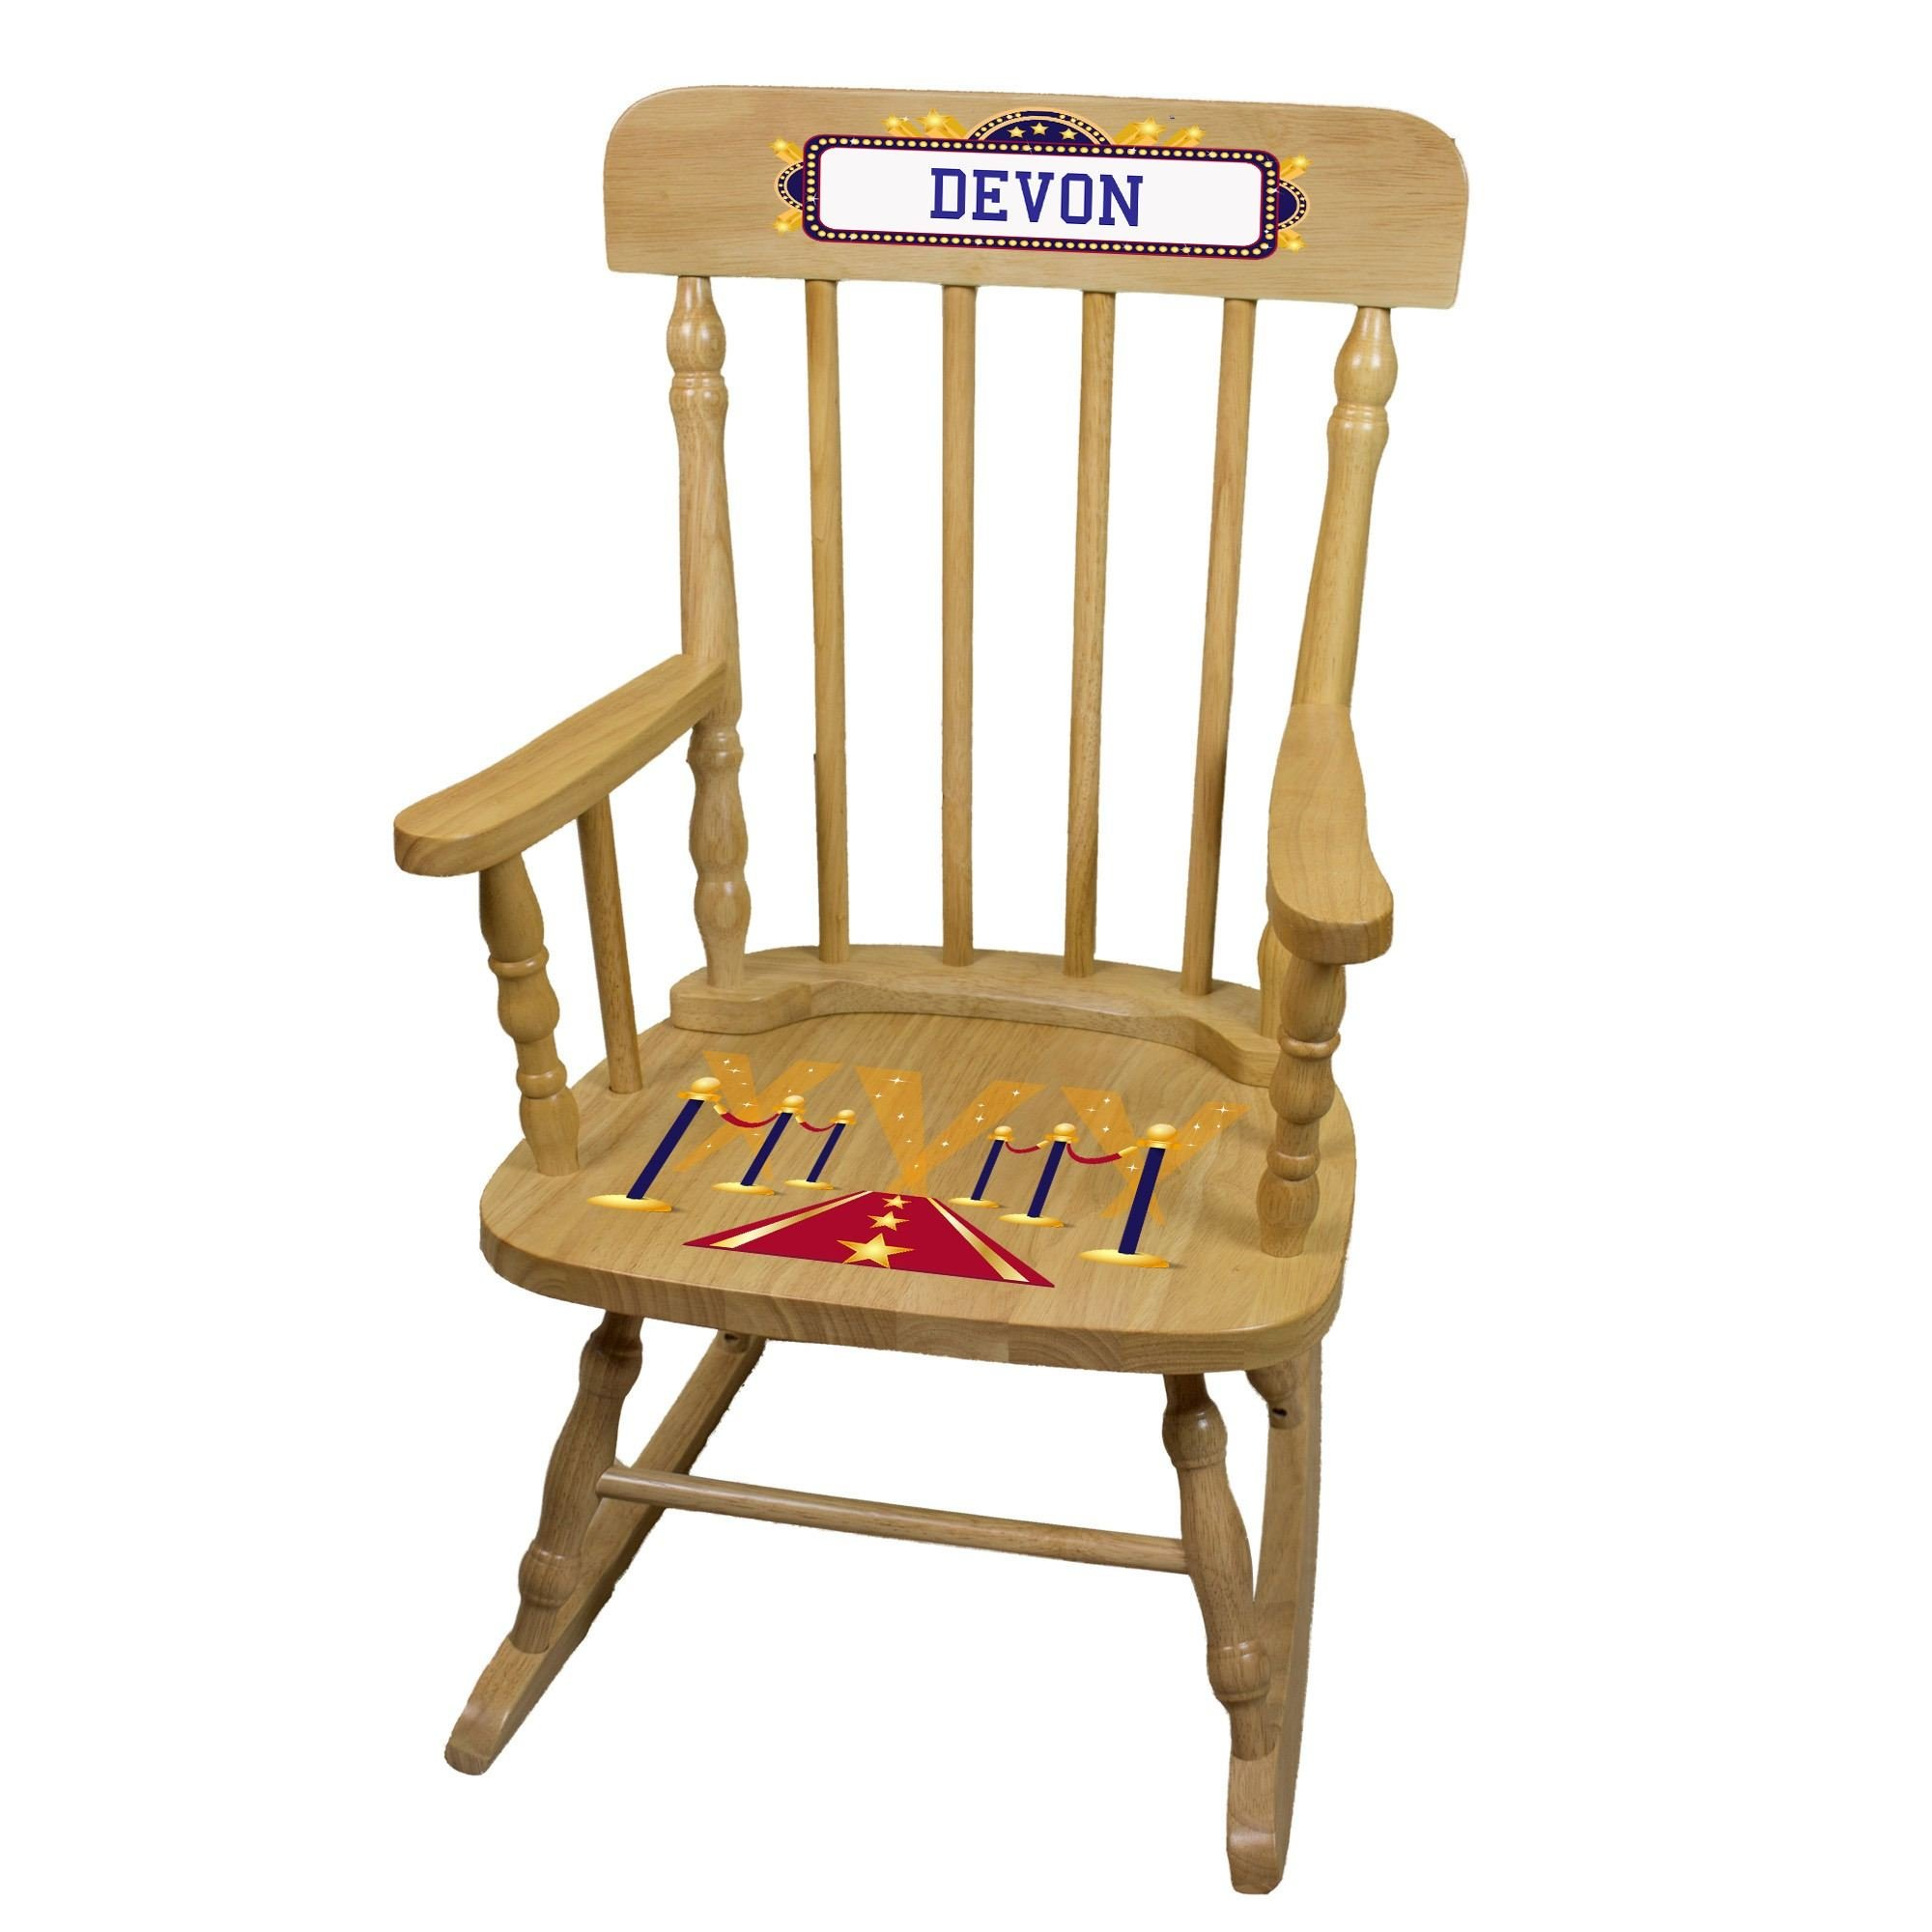 MyBambino Personalized A Star is Born blue Natural Wooden Childrens Rocking Chair